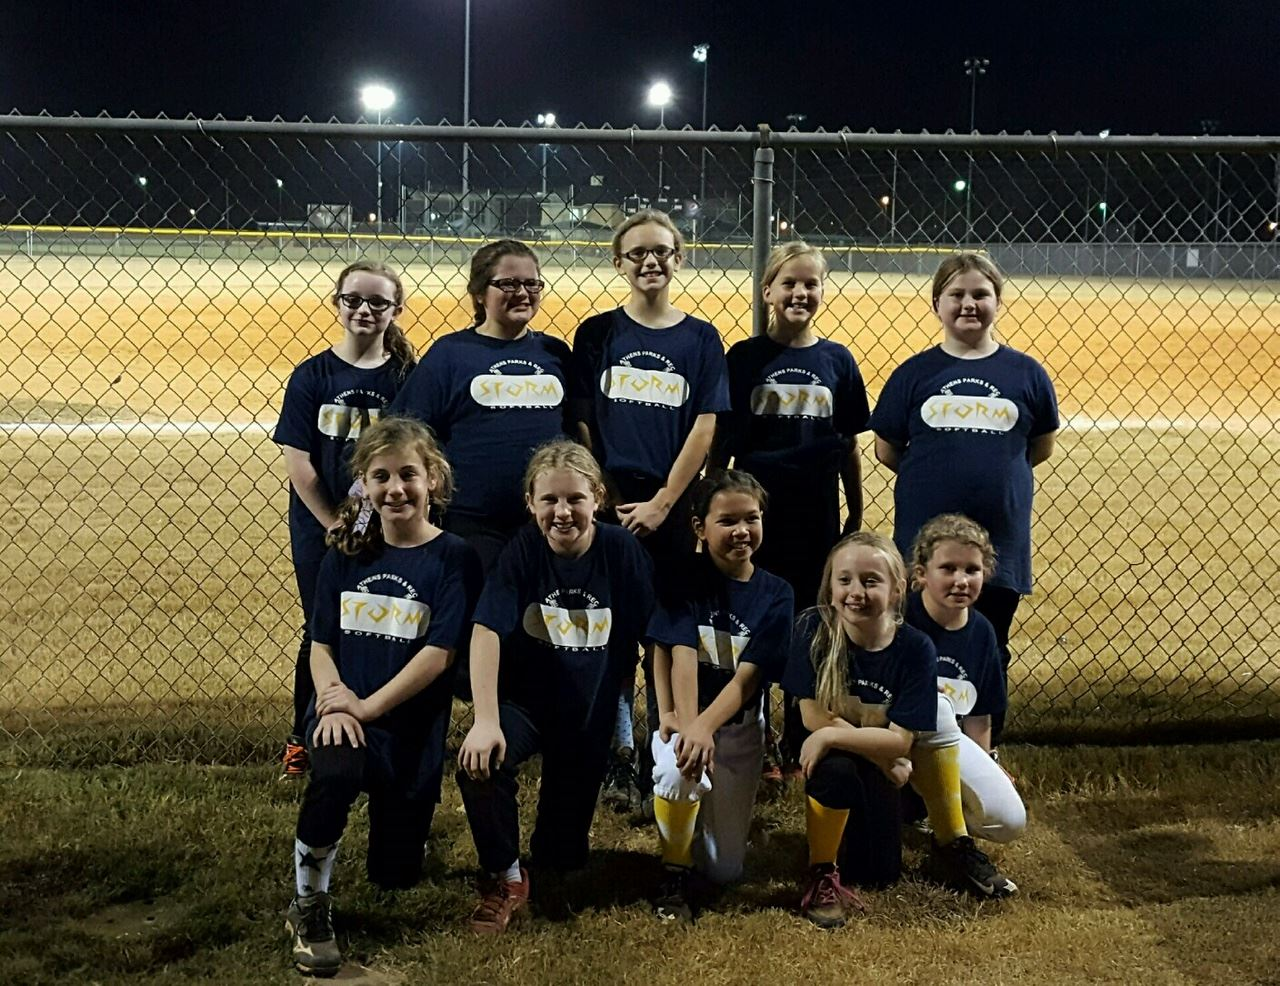 Fall 2016 Youth Softball-Team Storm